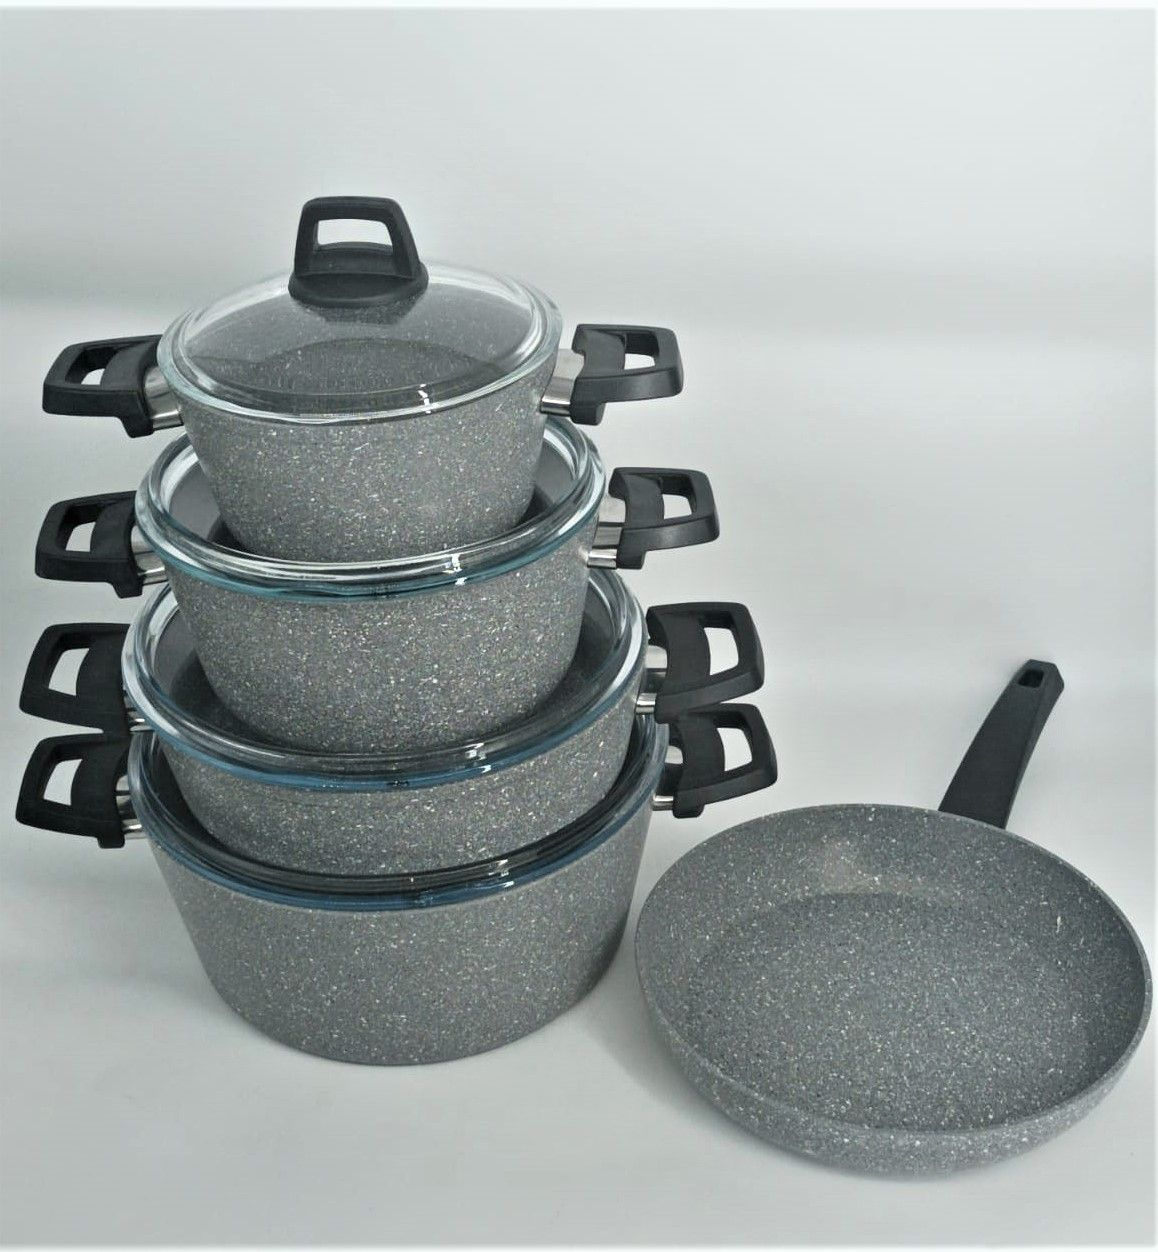 WISTERIA 9PCS GREY COOKWARE SET - MADE IN TURKEY